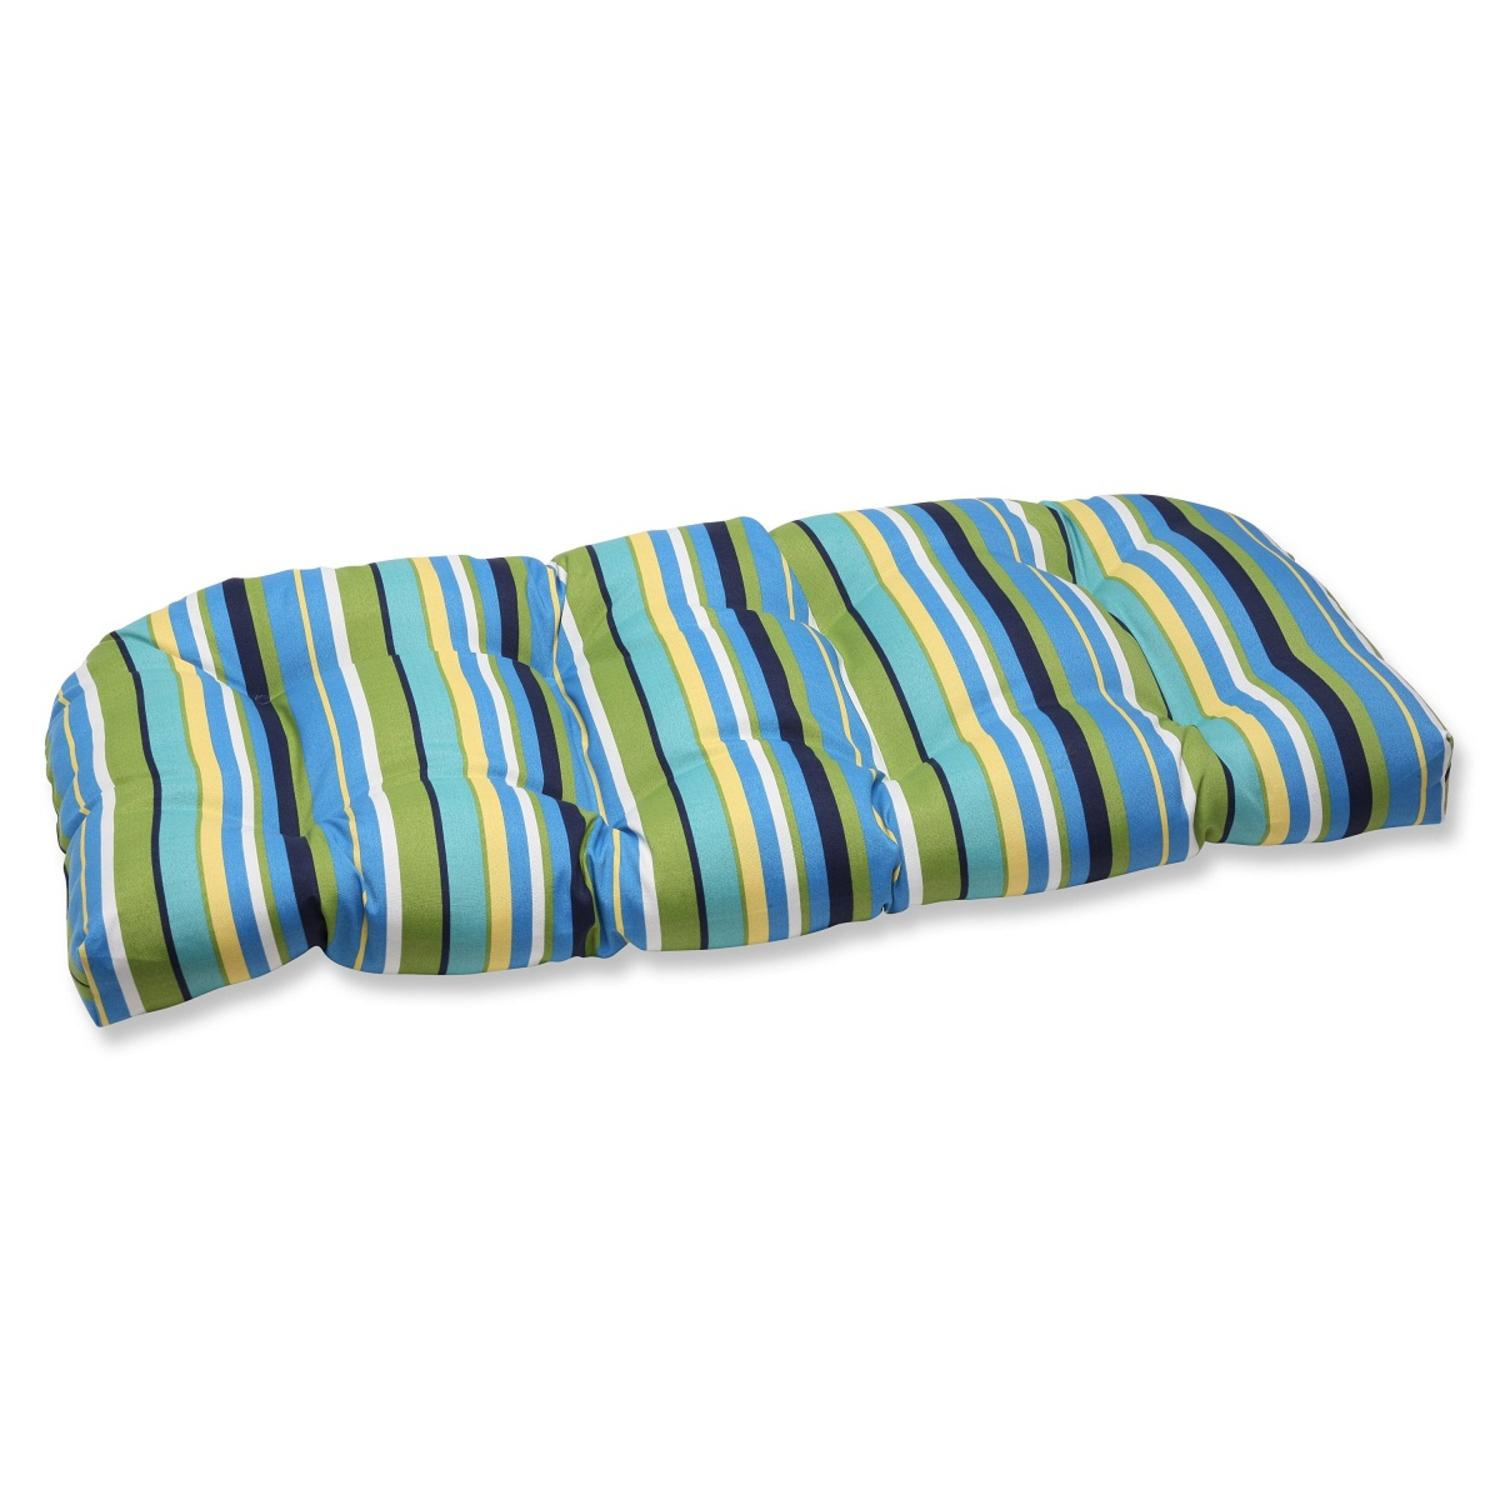 """44"""" Strisce Luminose Blue, Green & Yellow Striped Outdoor Patio Tufted Wicker Loveseat Cushion"""